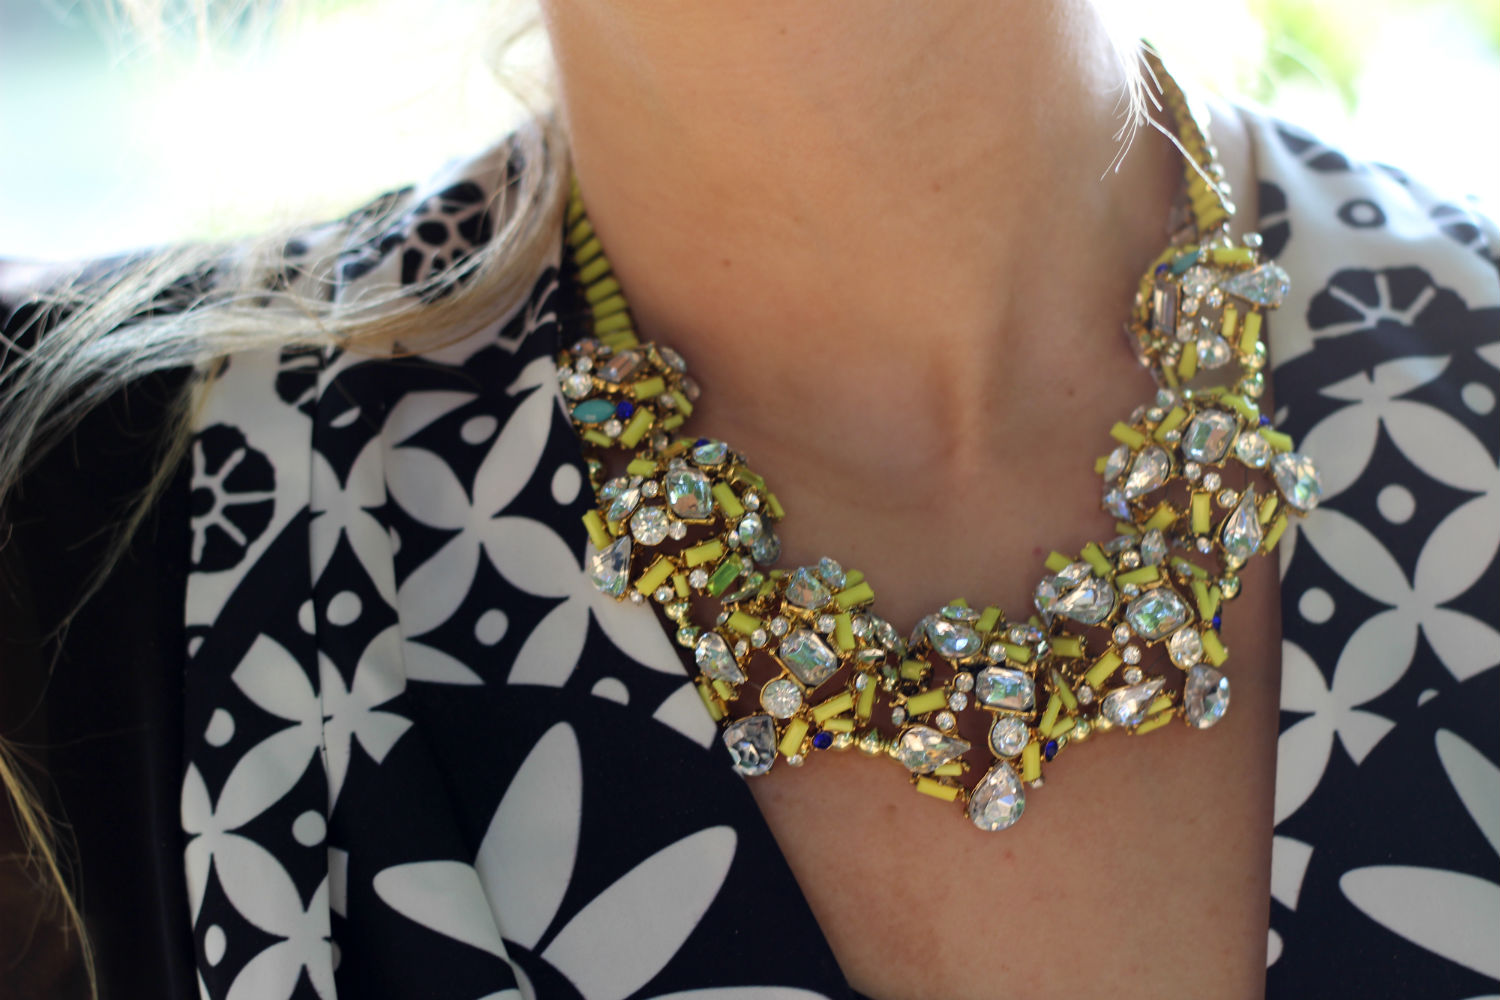 STATEMENTE NECKLACE COLLANA ESTATE 2015 ZARA GIALLA